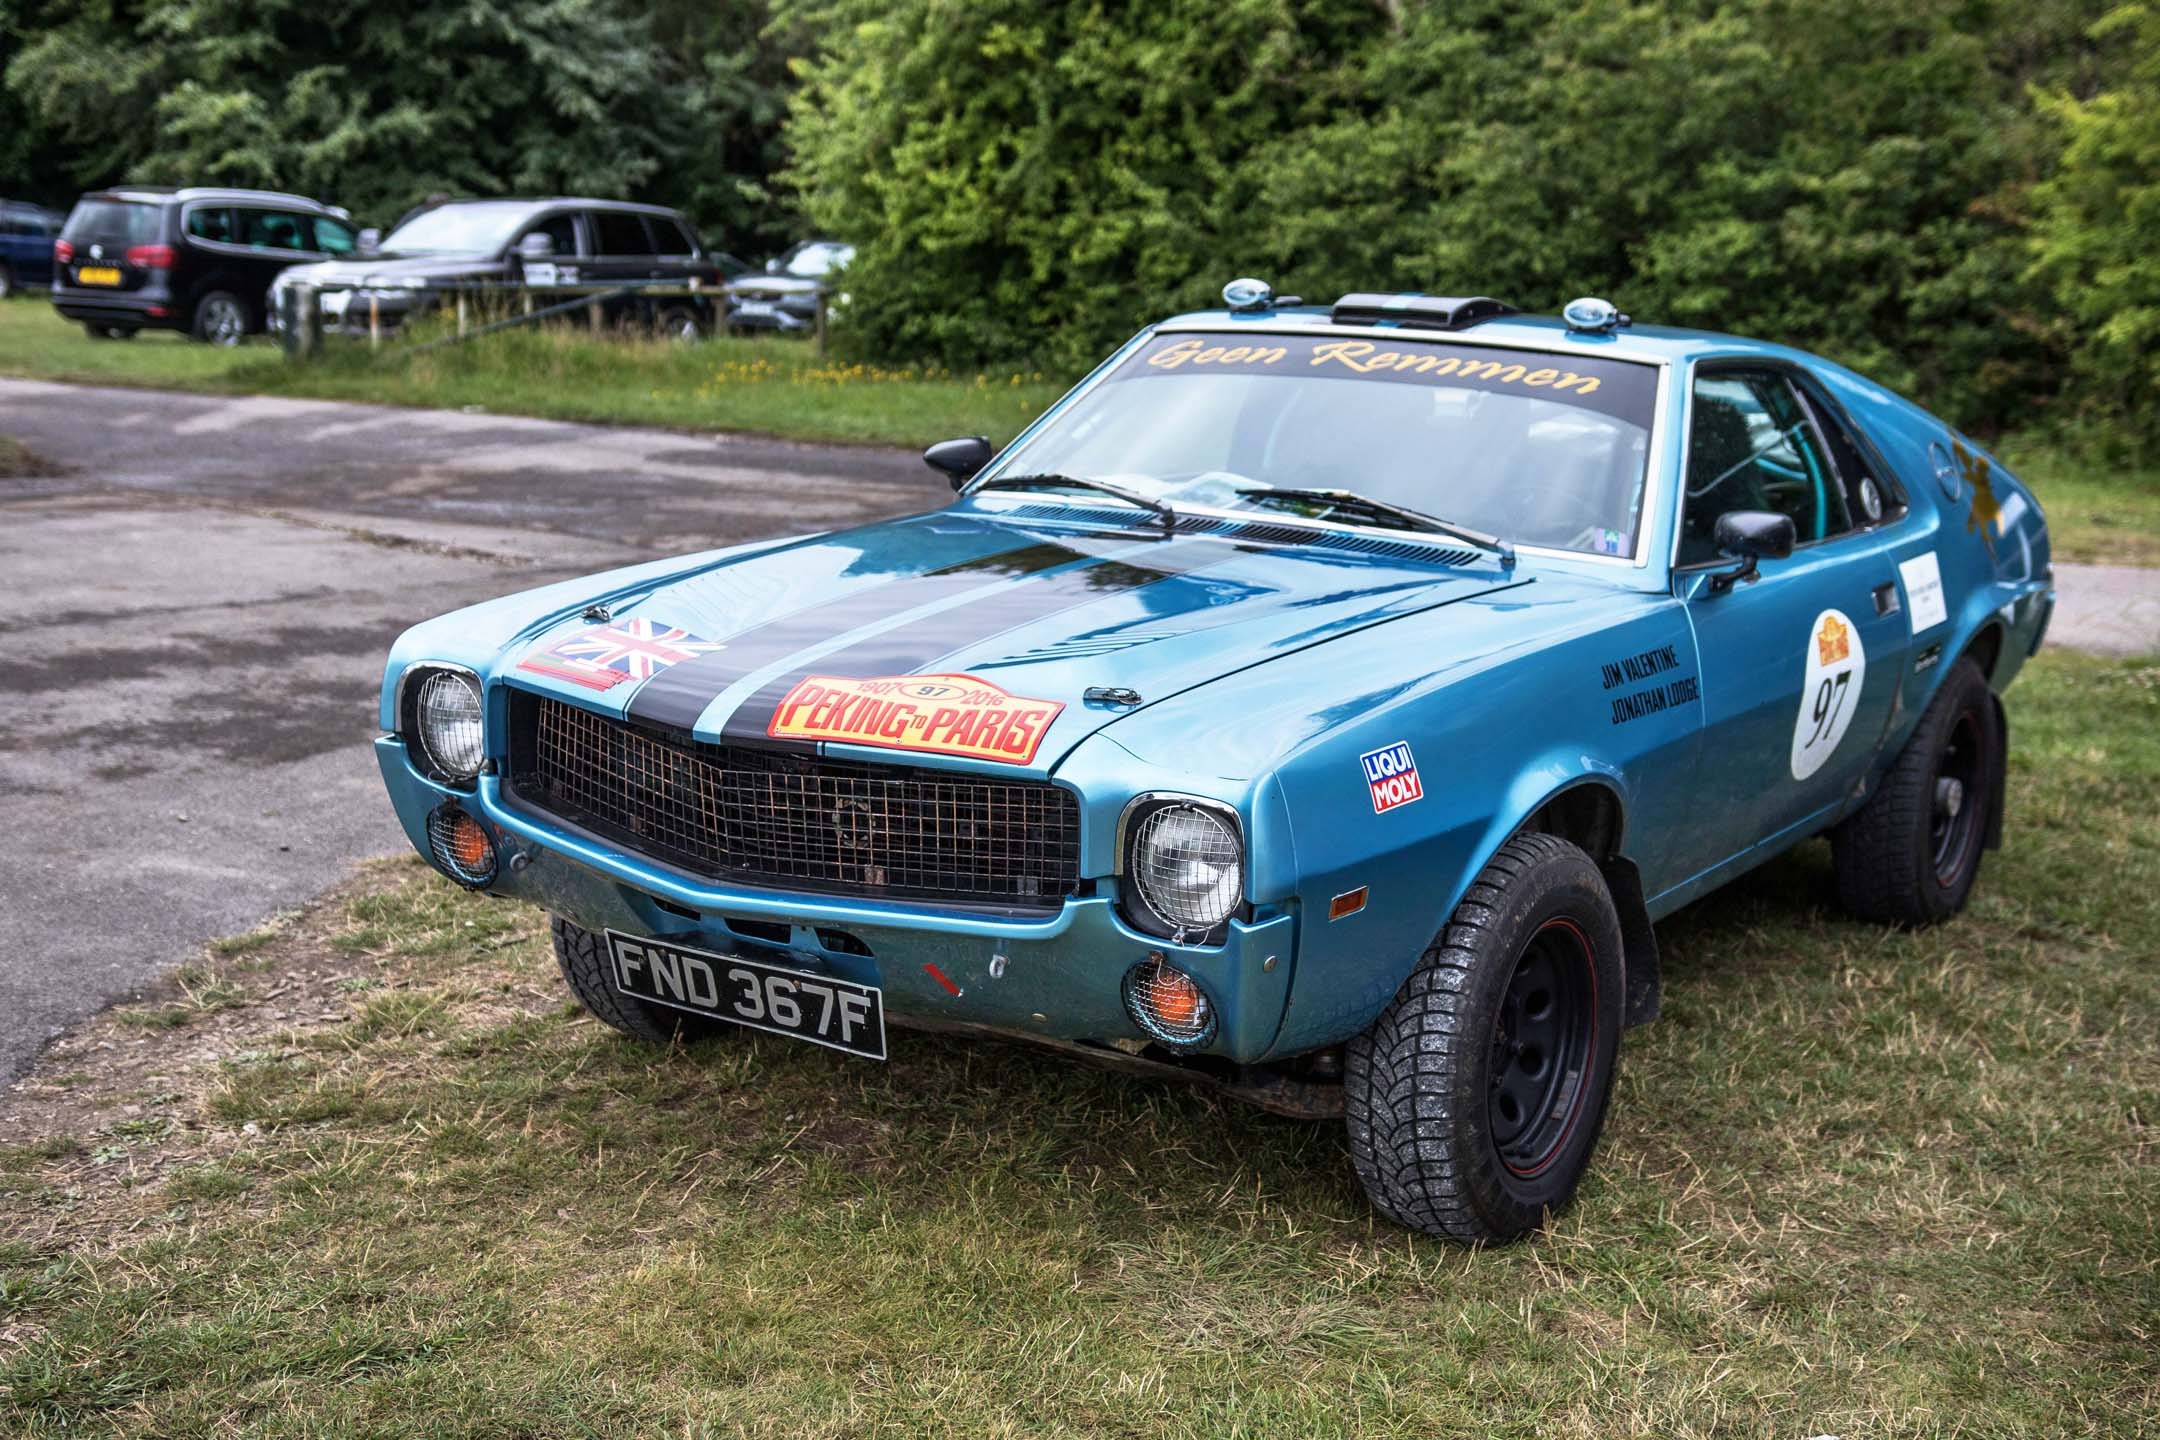 Tucked away in a corner, a lifted AMX shows that anything can be turned into a rally car, provided you've got big enough tires. This one had Peking to Paris badges on it, indicating it had hammered across the Gobi desert at one point.